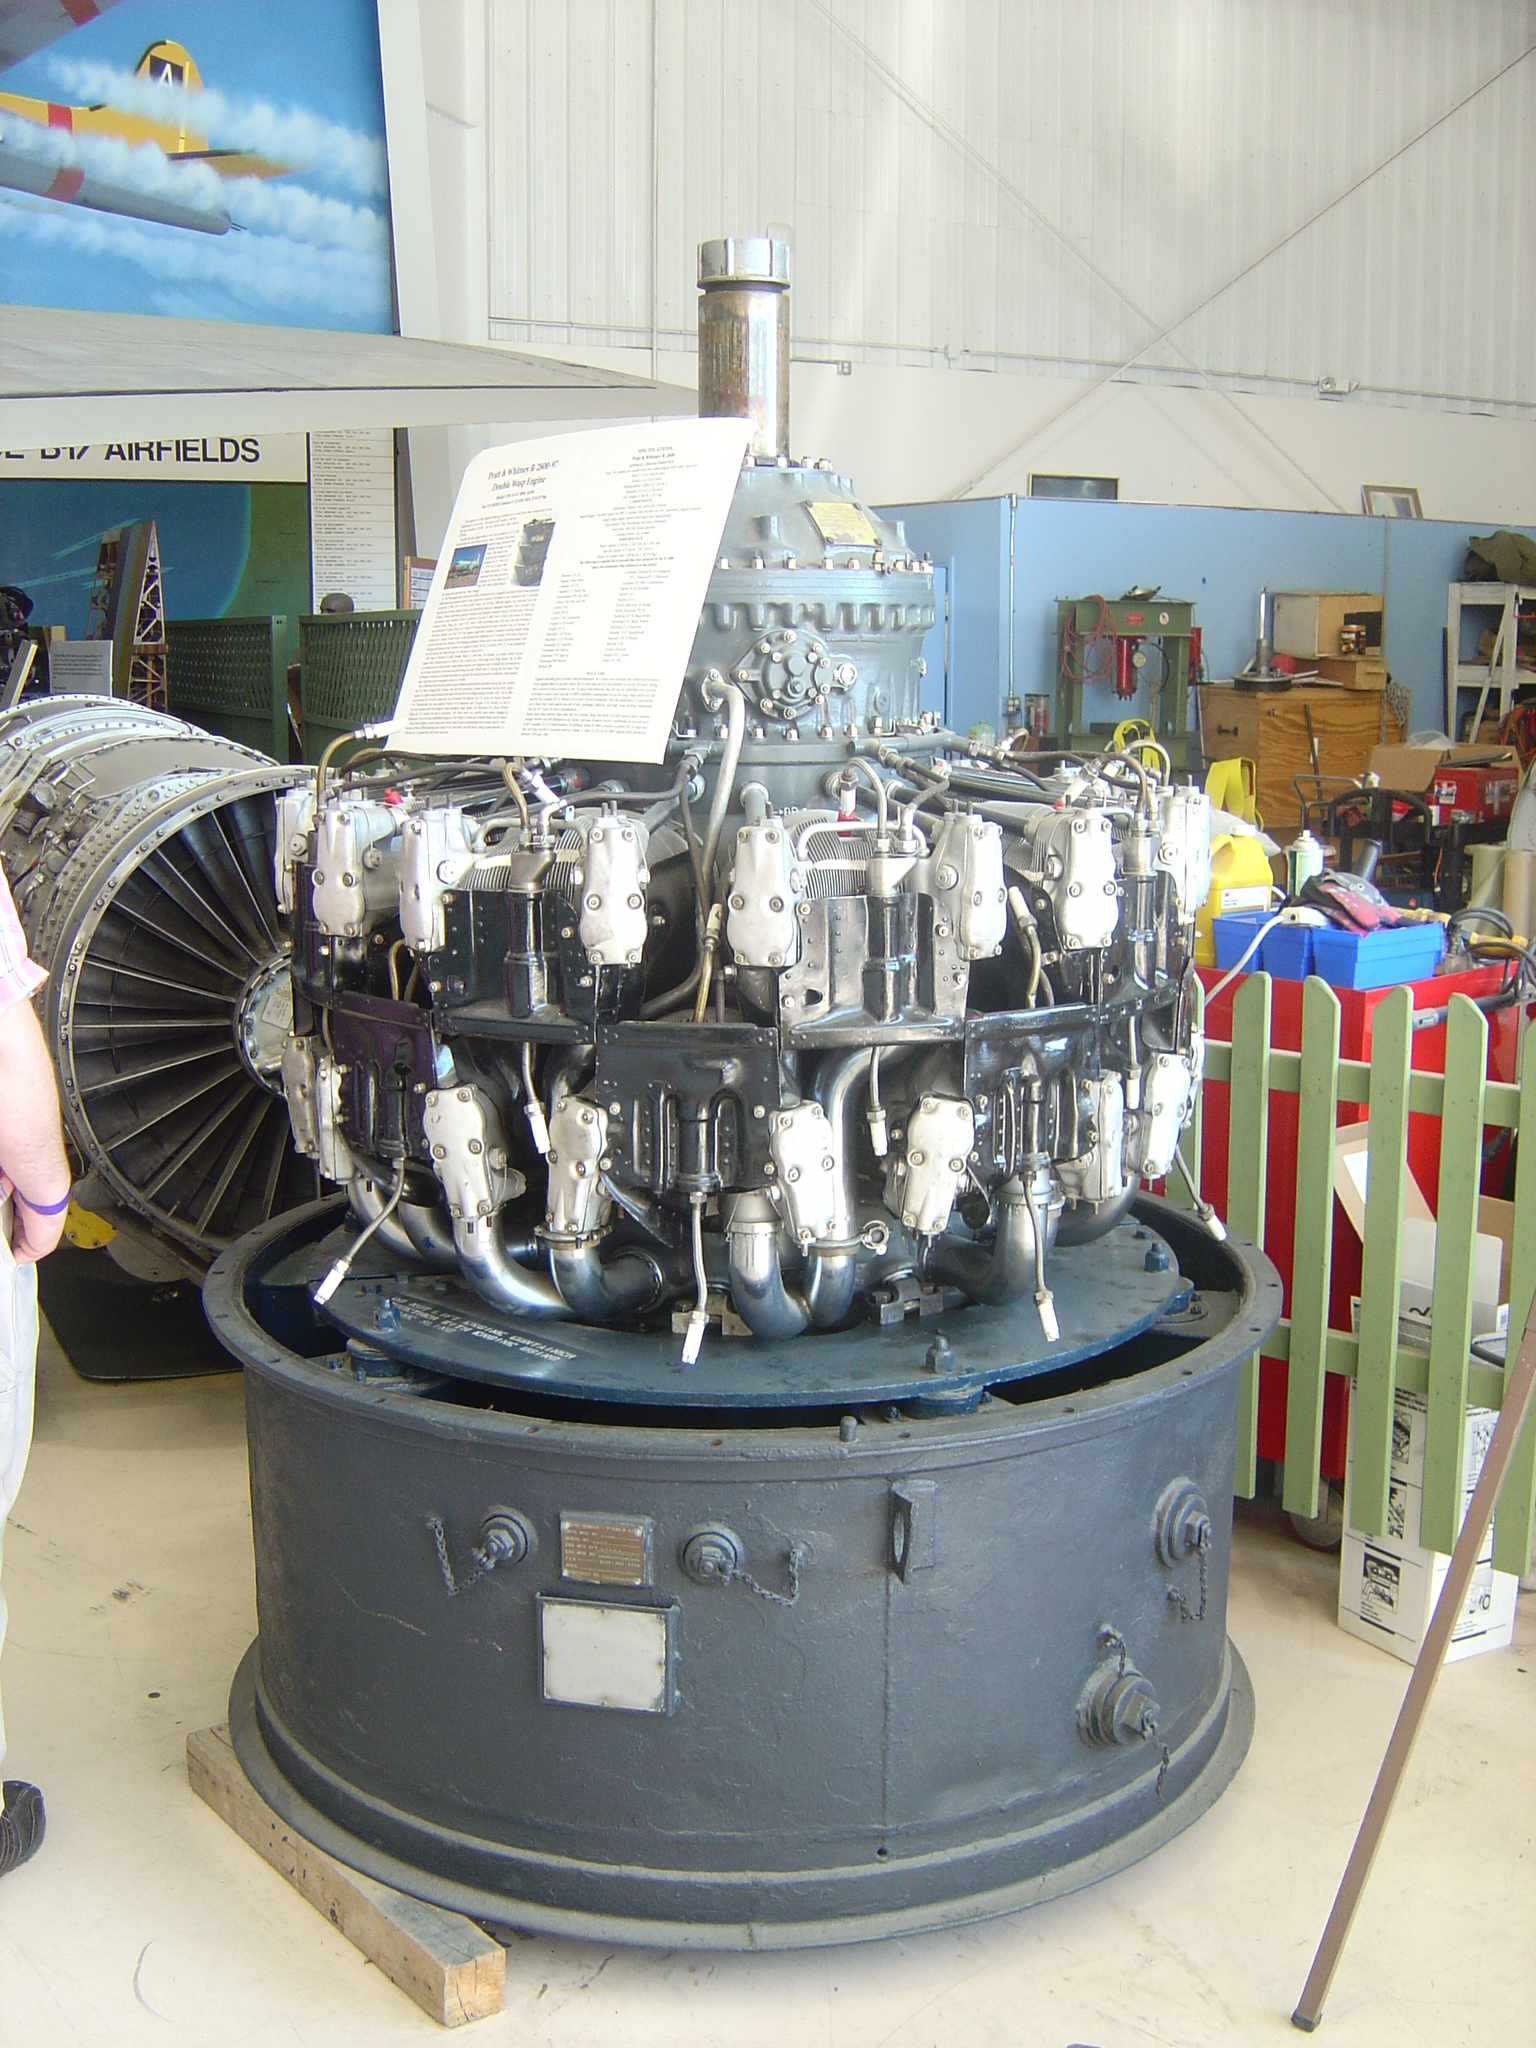 Pratt & Whitney R-2800 Double Wasp Radial Engine